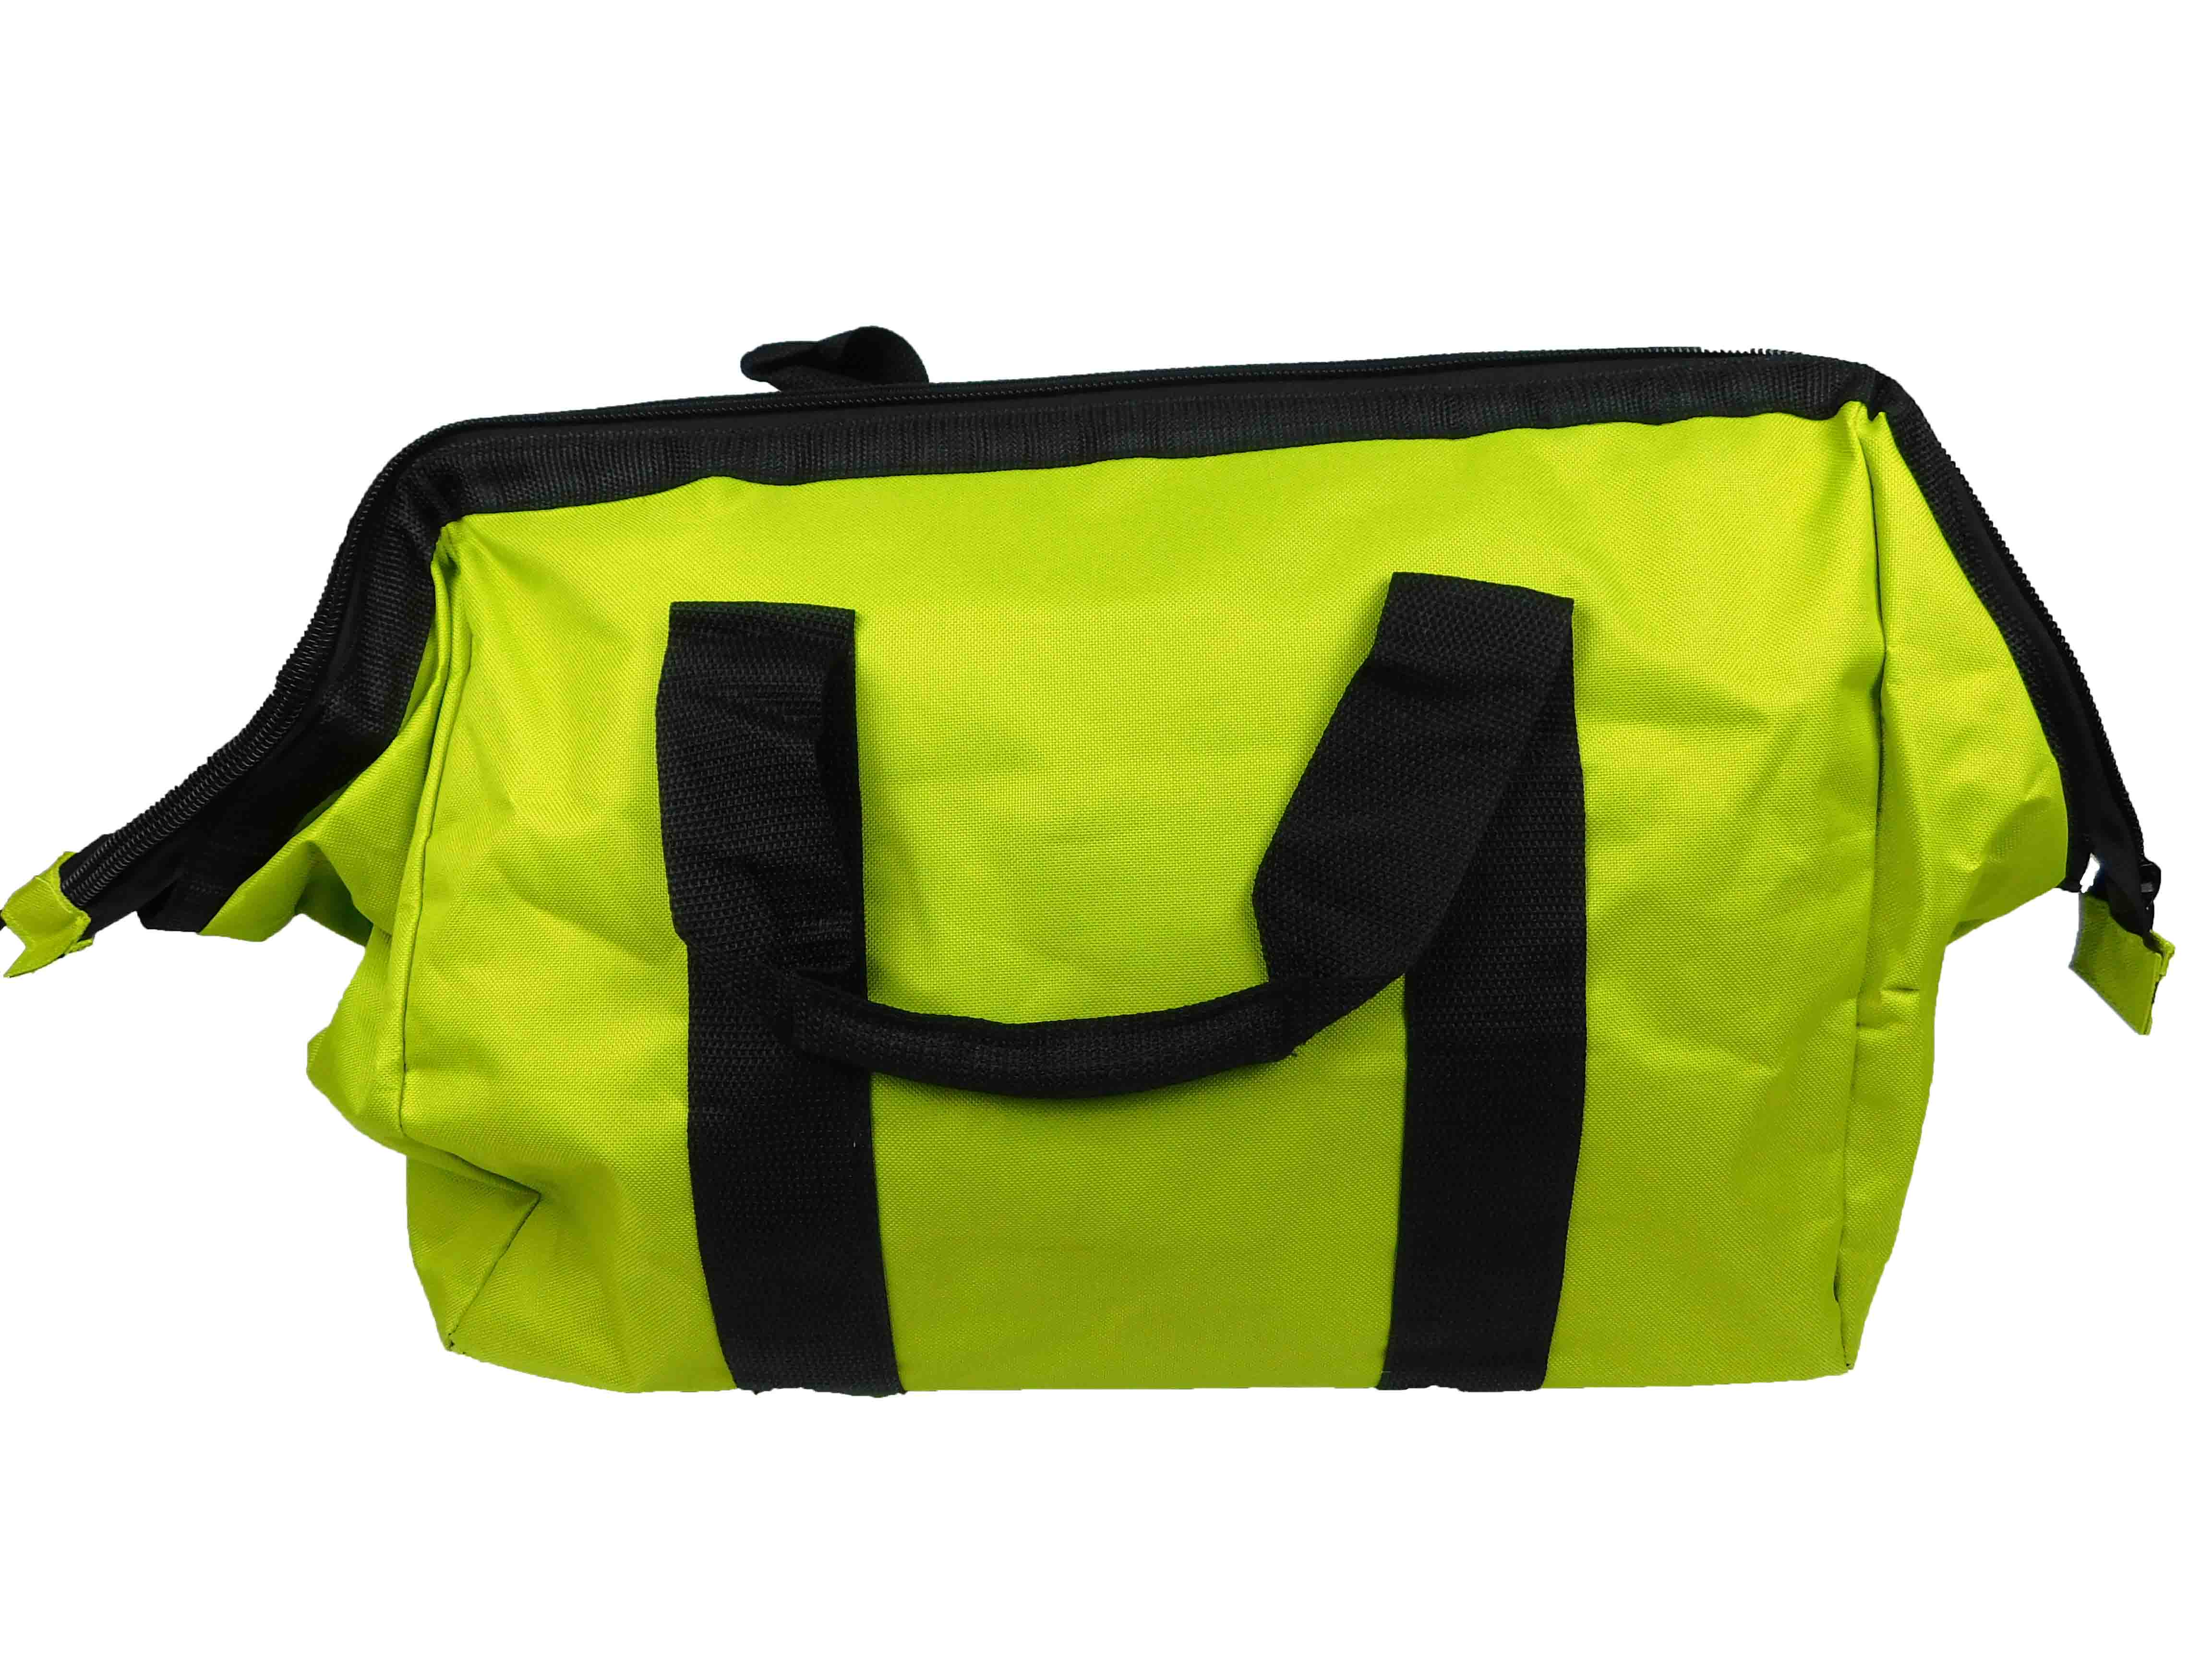 Ryobi-Contractors-Canvas-Wide-Mouth-Tool-Bag-image-2